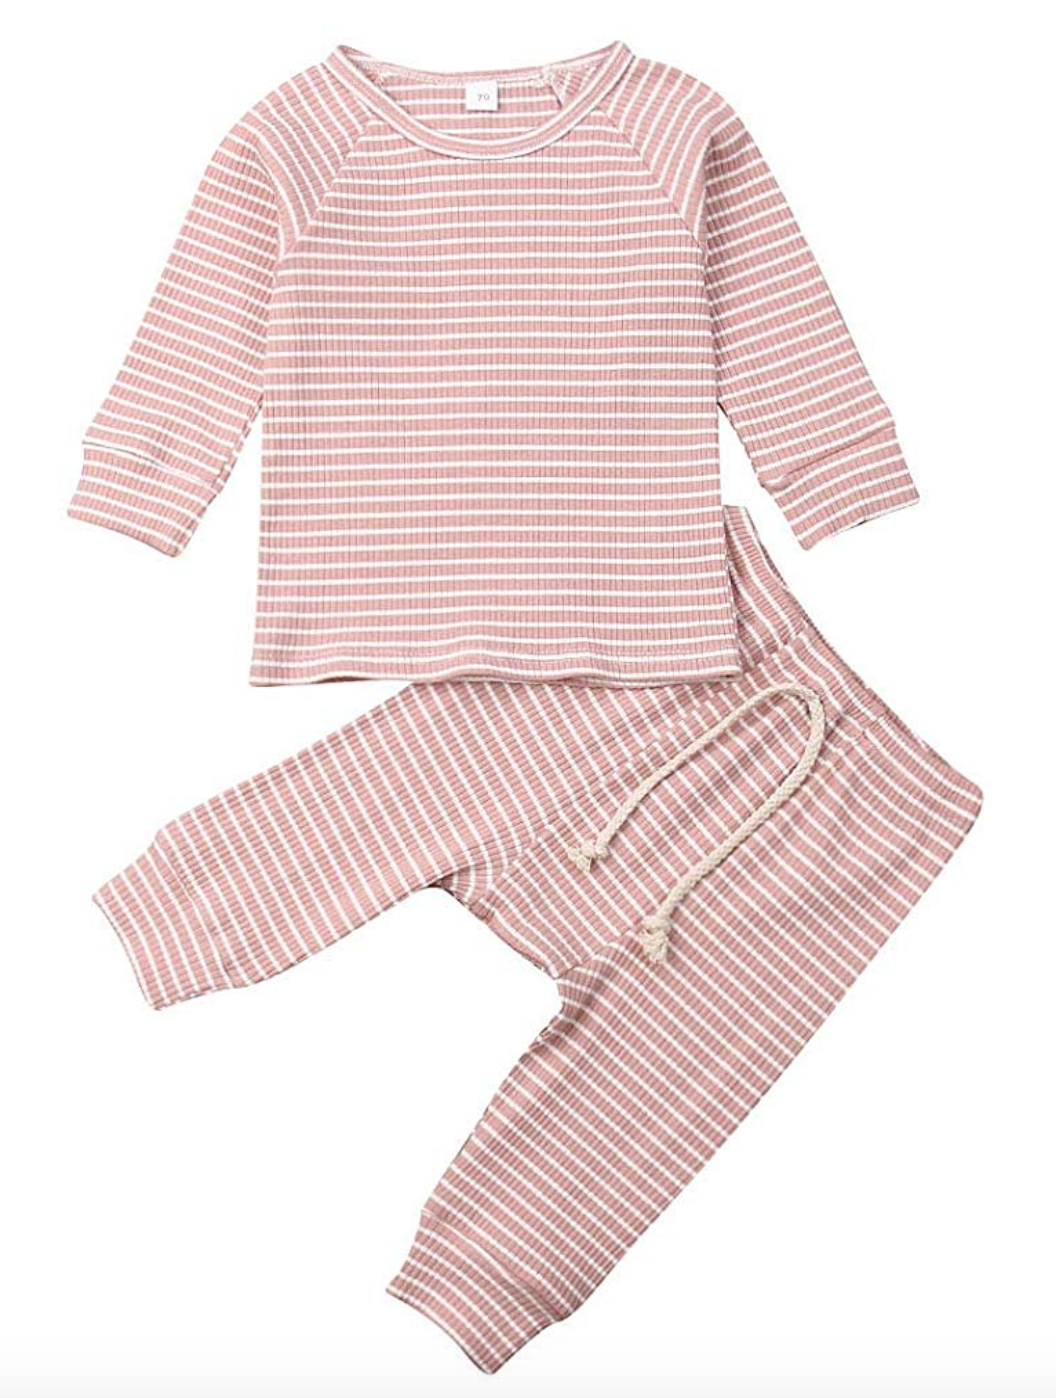 Newborn Unisex Baby Clothes Outfits Long Sleeve Ribbed 2 Piece Set